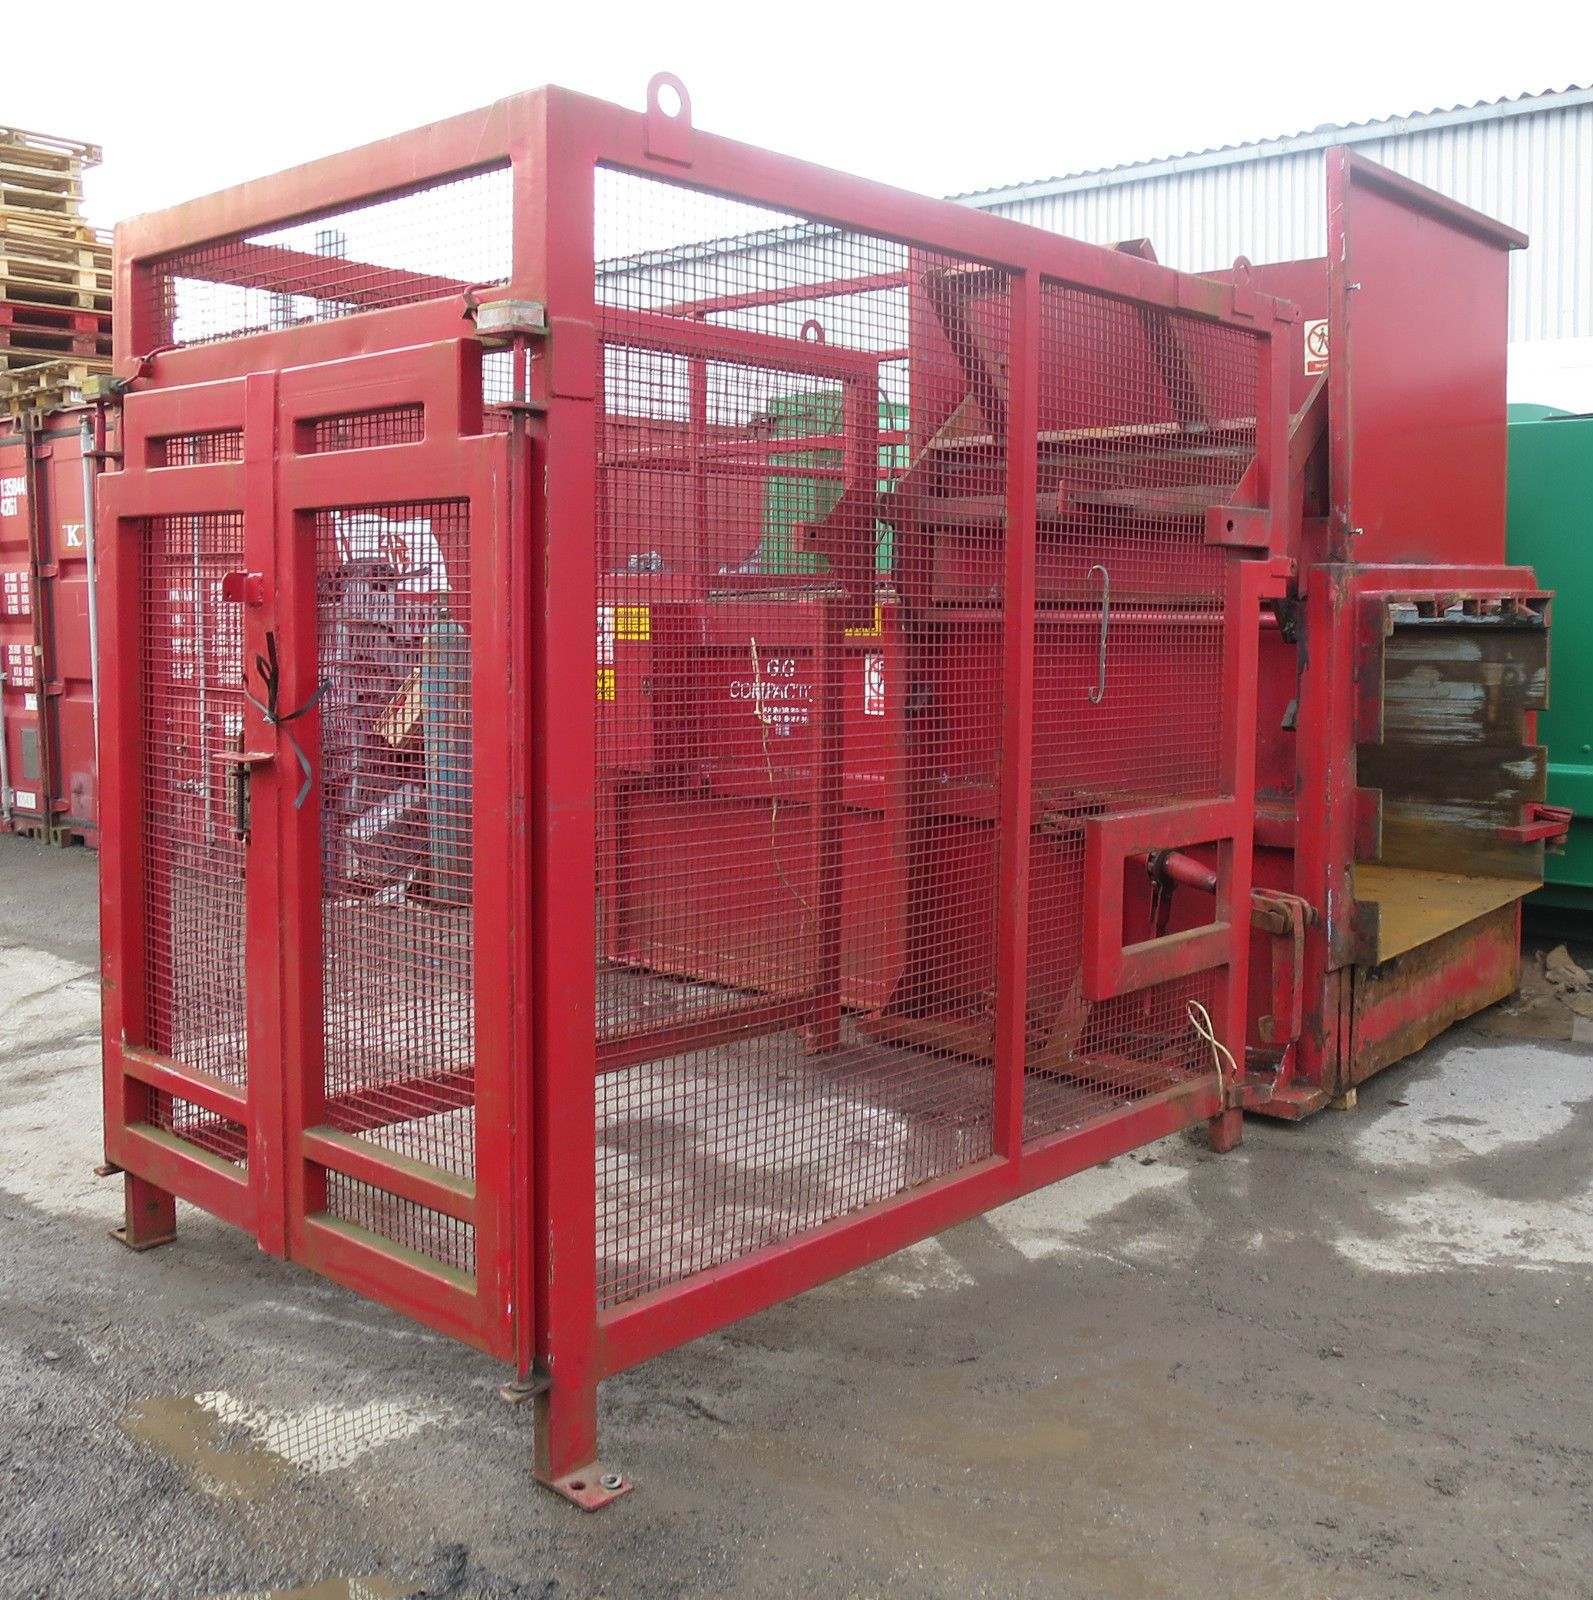 Trash Compactors | DNV 2.7-1 Offshore Containers | On-Site